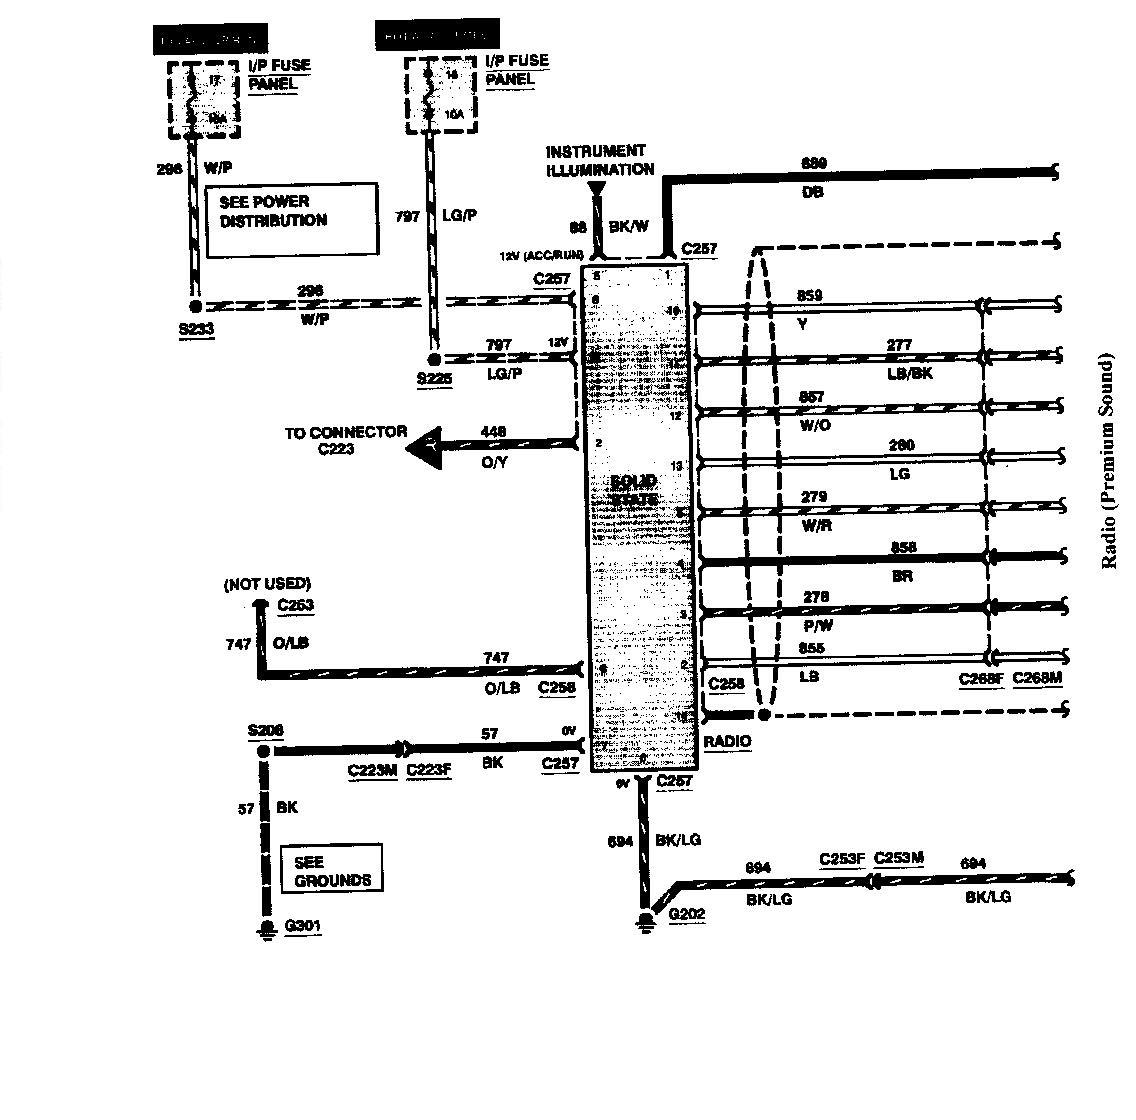 2003 lincoln town car radio wiring diagram